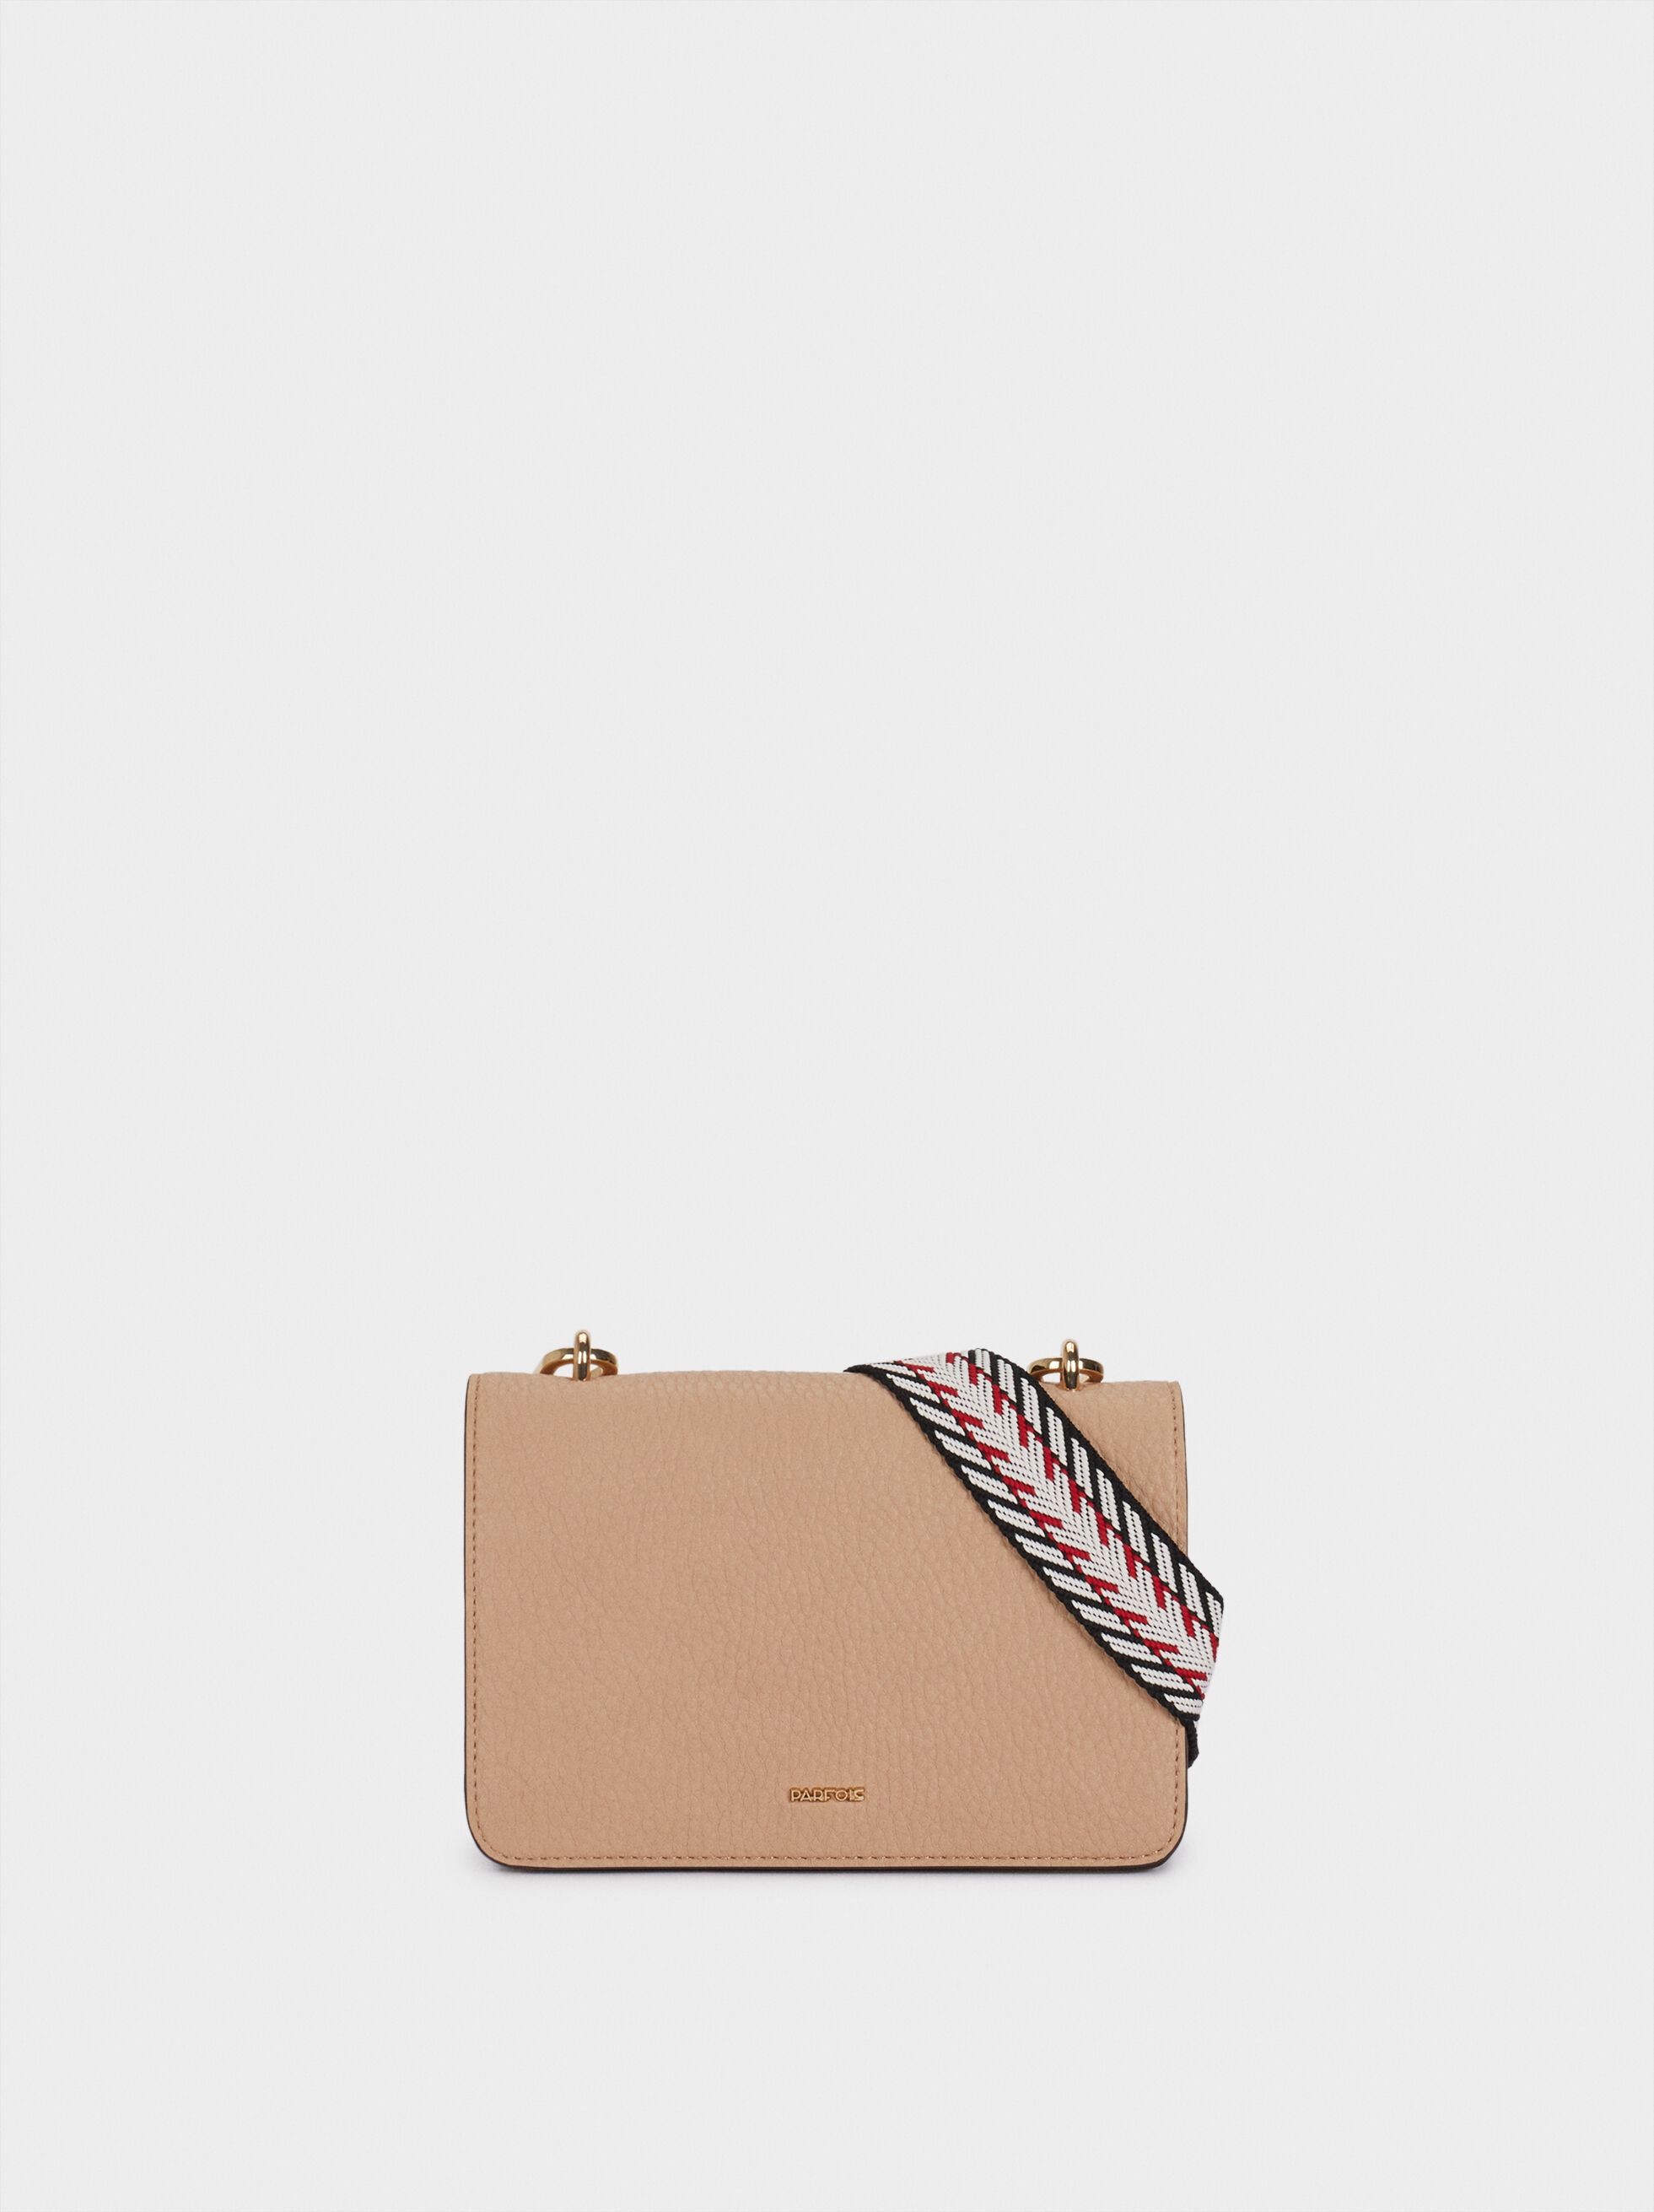 Crossbody Bag With Contrast Strap, Pink, hi-res